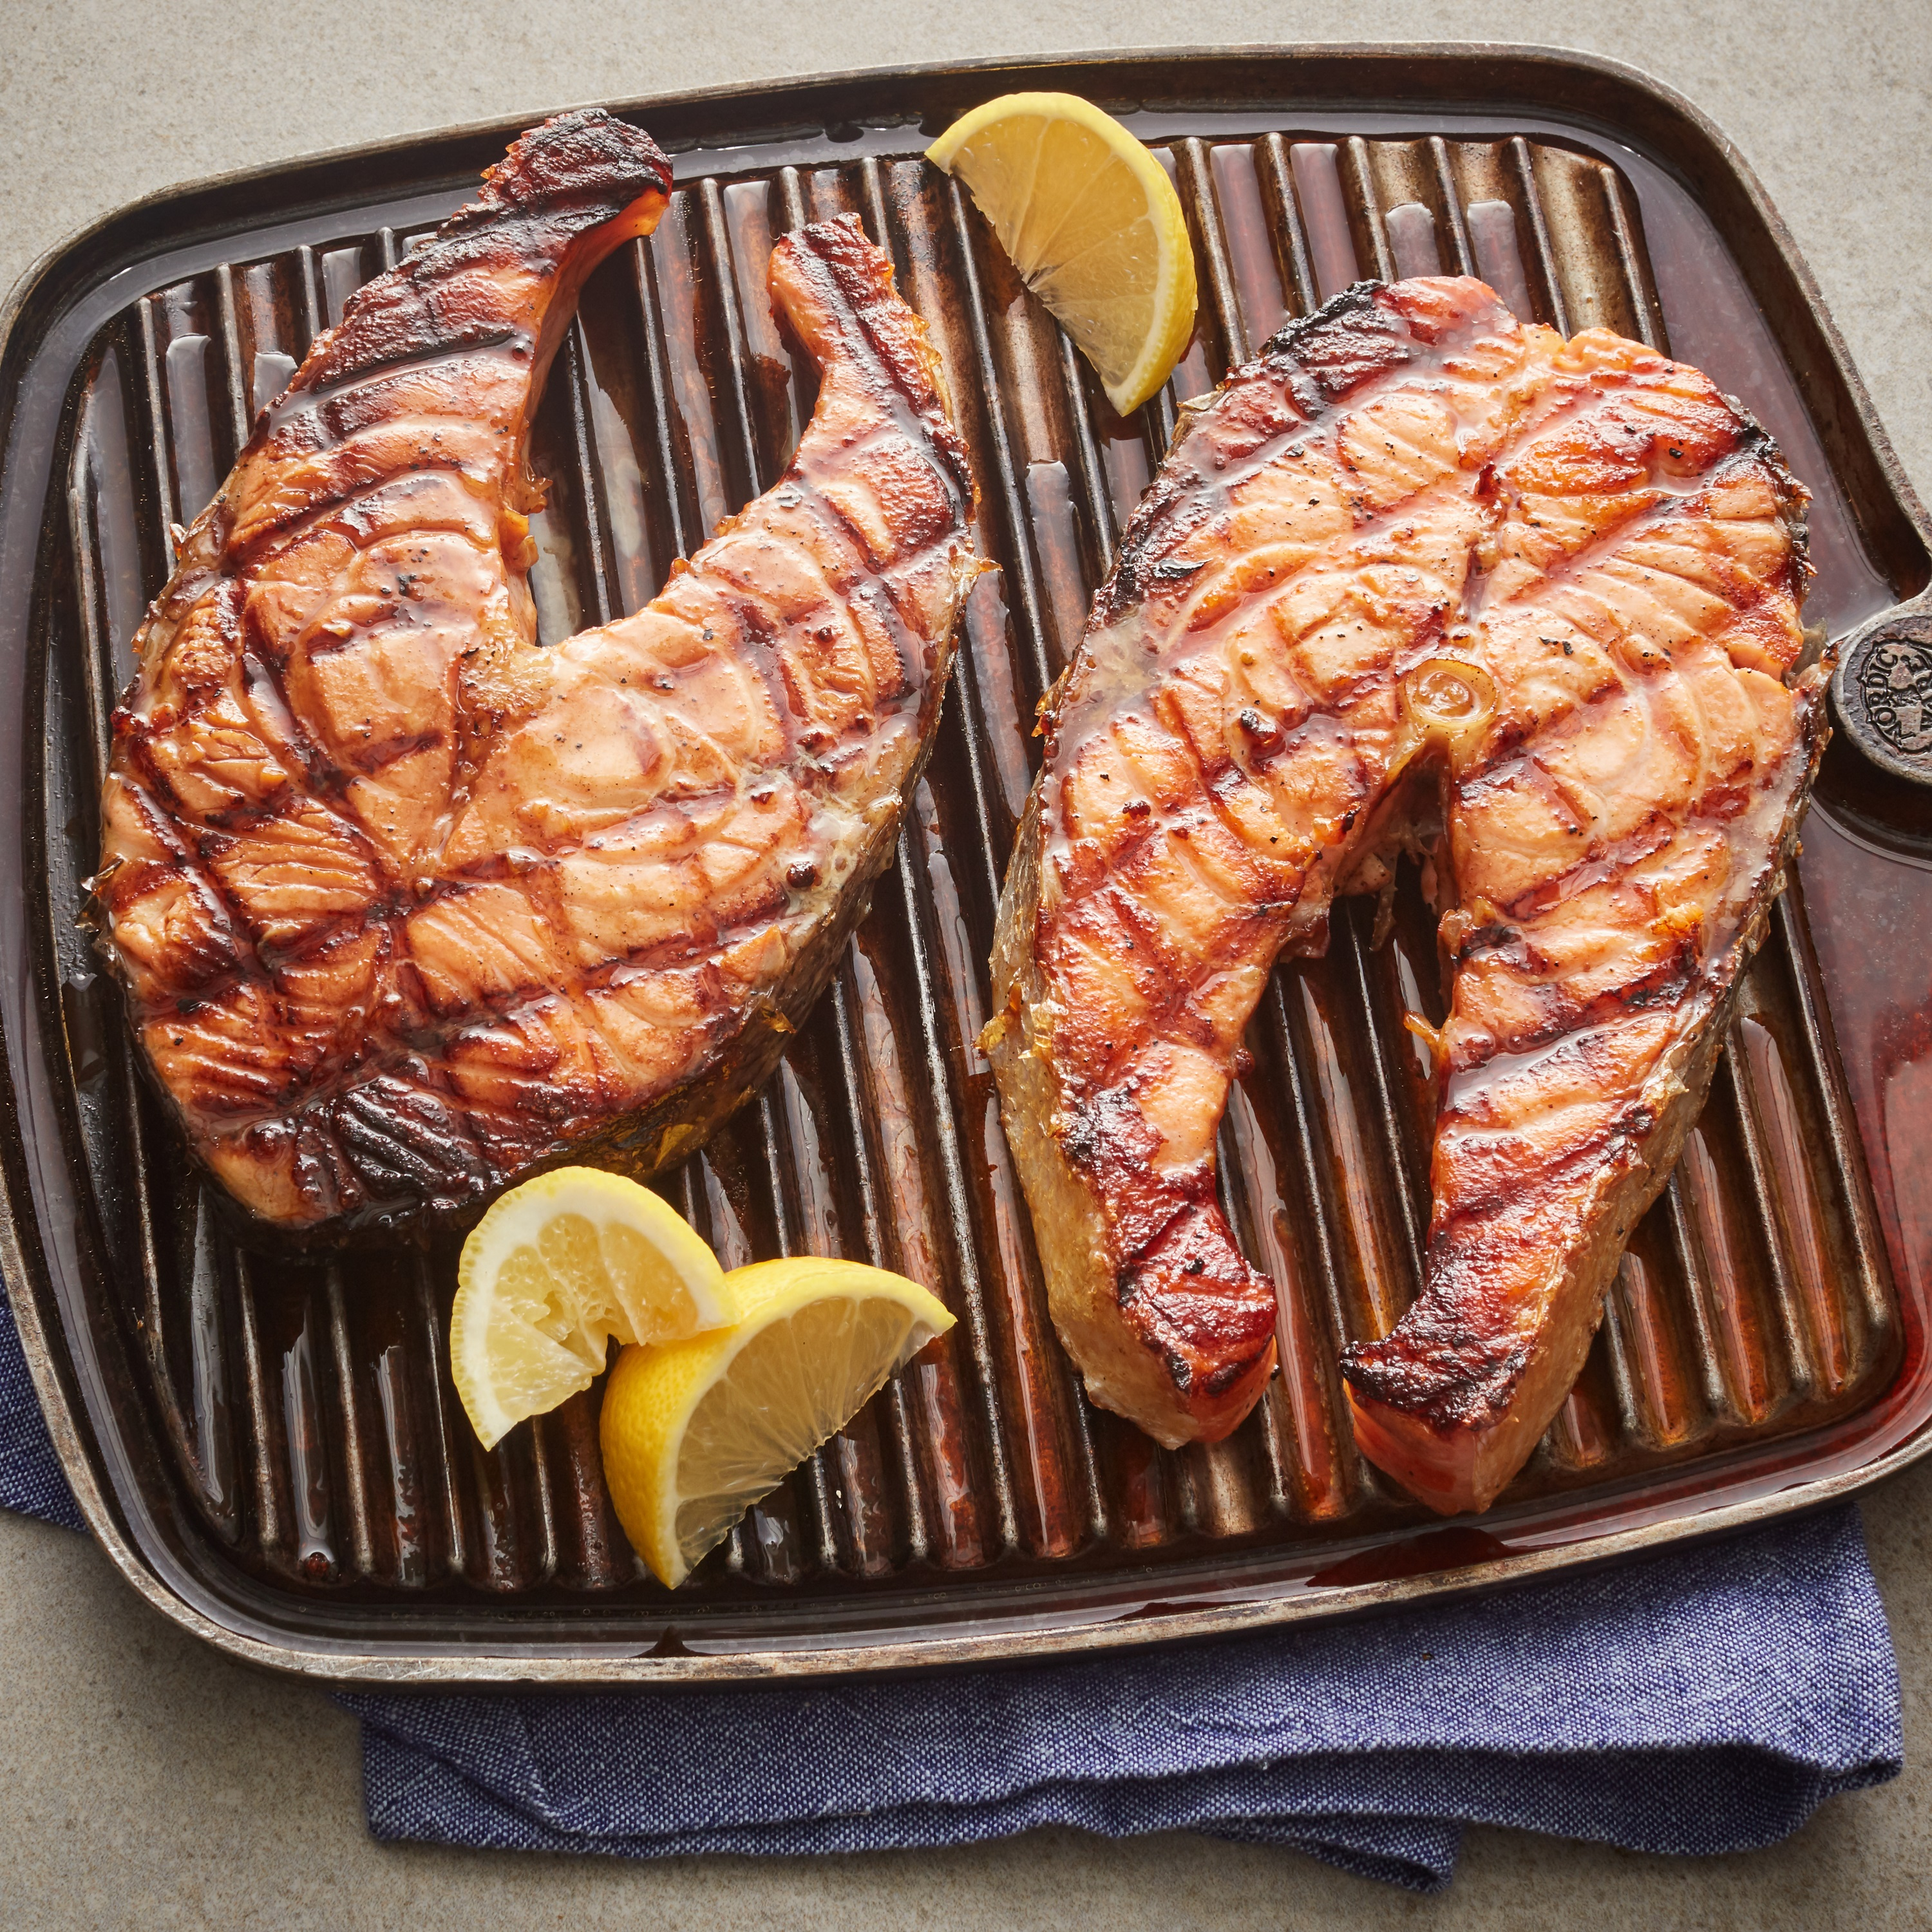 """Here's a very simple salmon recipe that starts with a marinade of soy sauce, red wine, ginger, and black pepper. Grill over hot coals for about 5 minutes per side, basting frequently with extra marinade. """"This seafood treat is best prepared over a charcoal fire, but in bad weather the oven broiler will do,"""" says Alan Harasimowicz. """"The secret is in the marinade."""""""